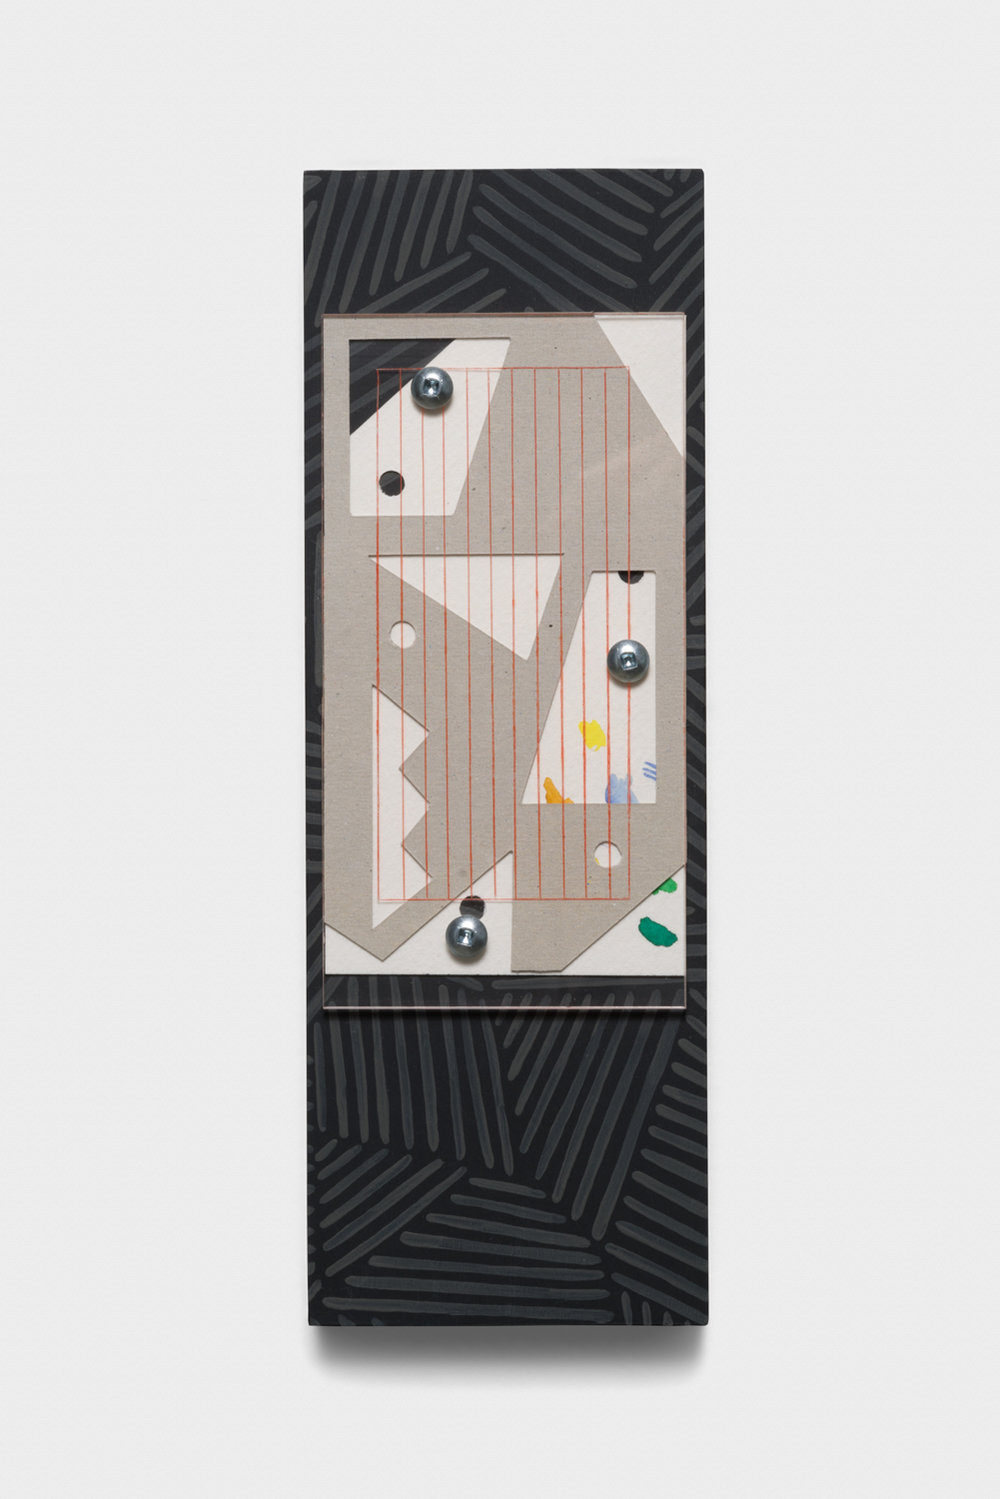 Vanessa Maltese  Chart no. 19  2014 Wood, paper, plexiglass, watercolor paint, hardware, chalkboard paint 10h x 3 ½w x ¾d in VM005